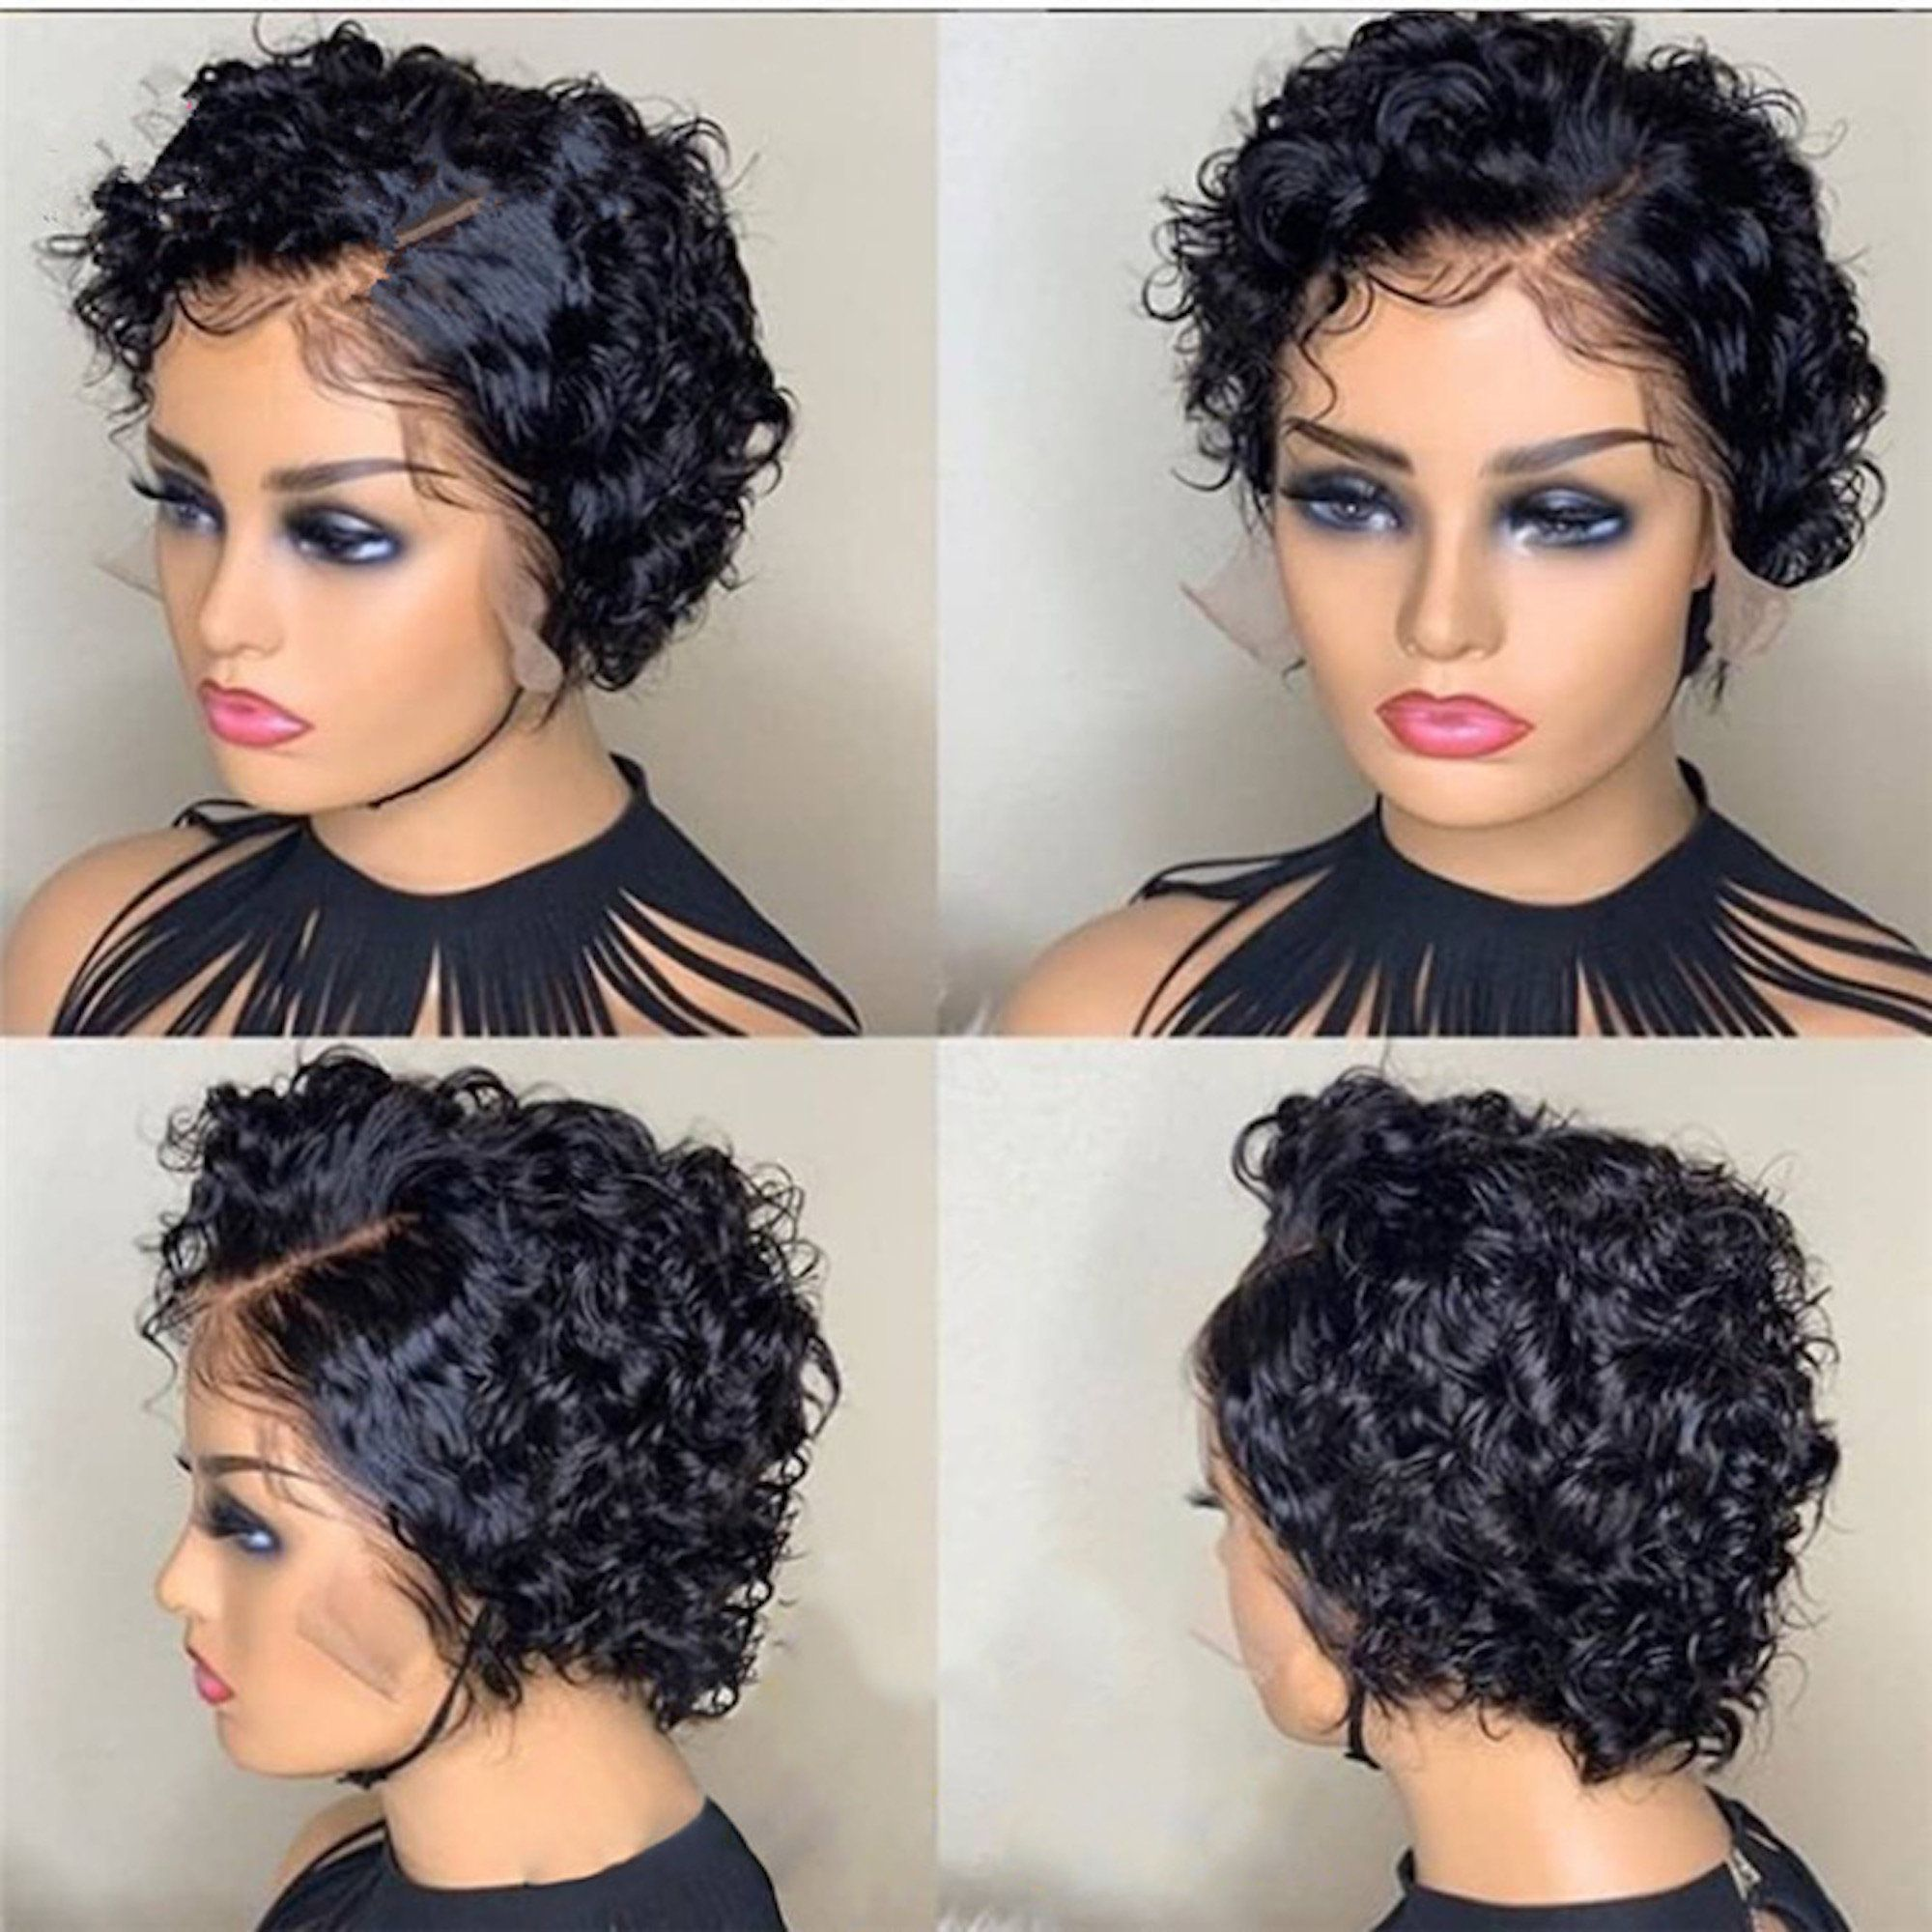 Short Curly Swiss Lace Front Indian Remy Wig Curly Human Hair Wig Human Wigs Short Bob Wigs